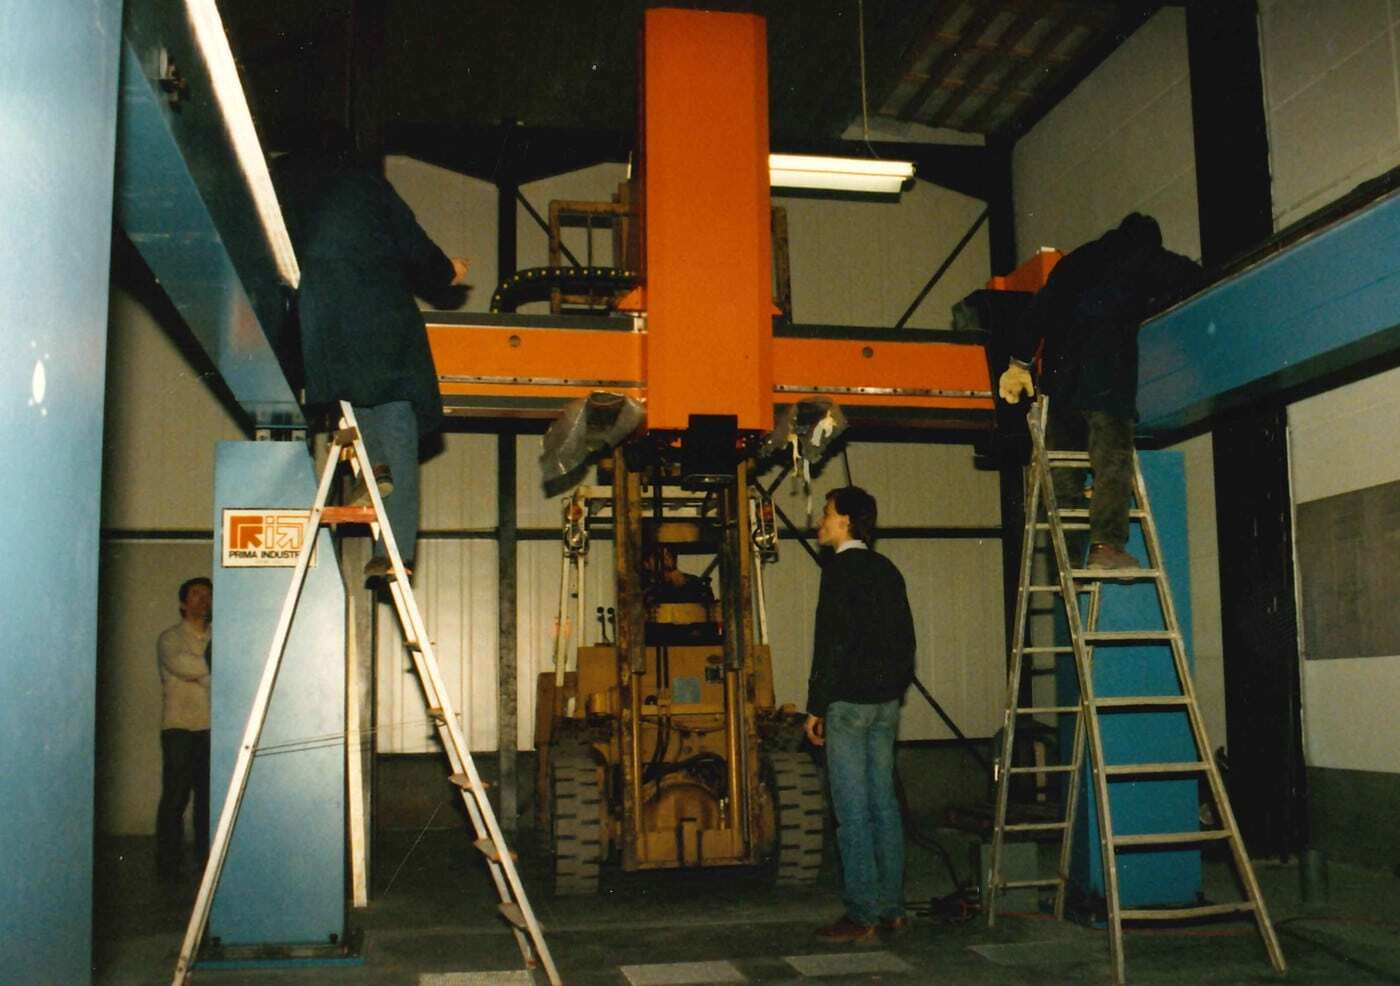 1989: THE ASSEMBLY OF THE 5-AXIS LASER IN 1989